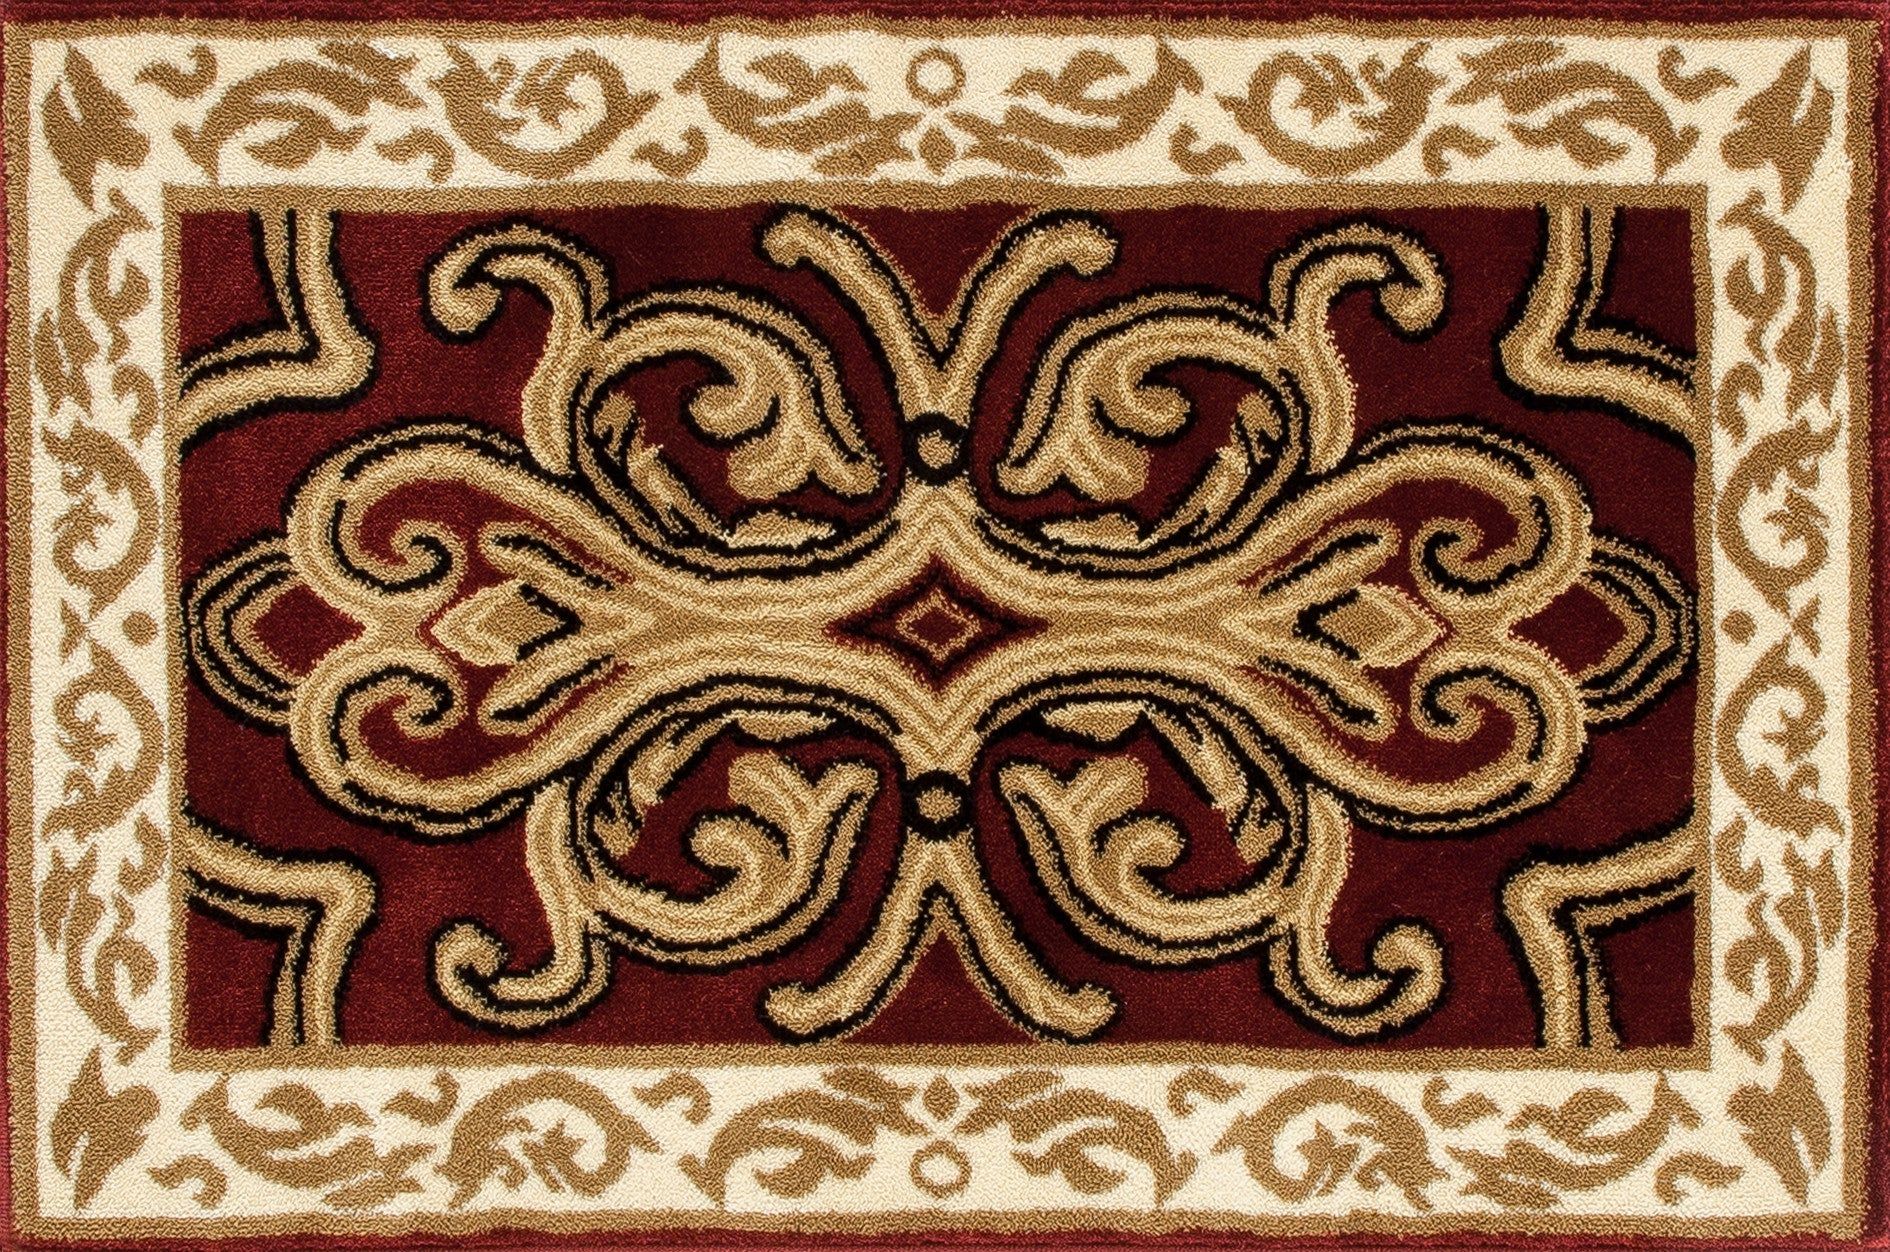 Art Carpet Hearth 2804 Burgundy/Light Beige Area Rug main image